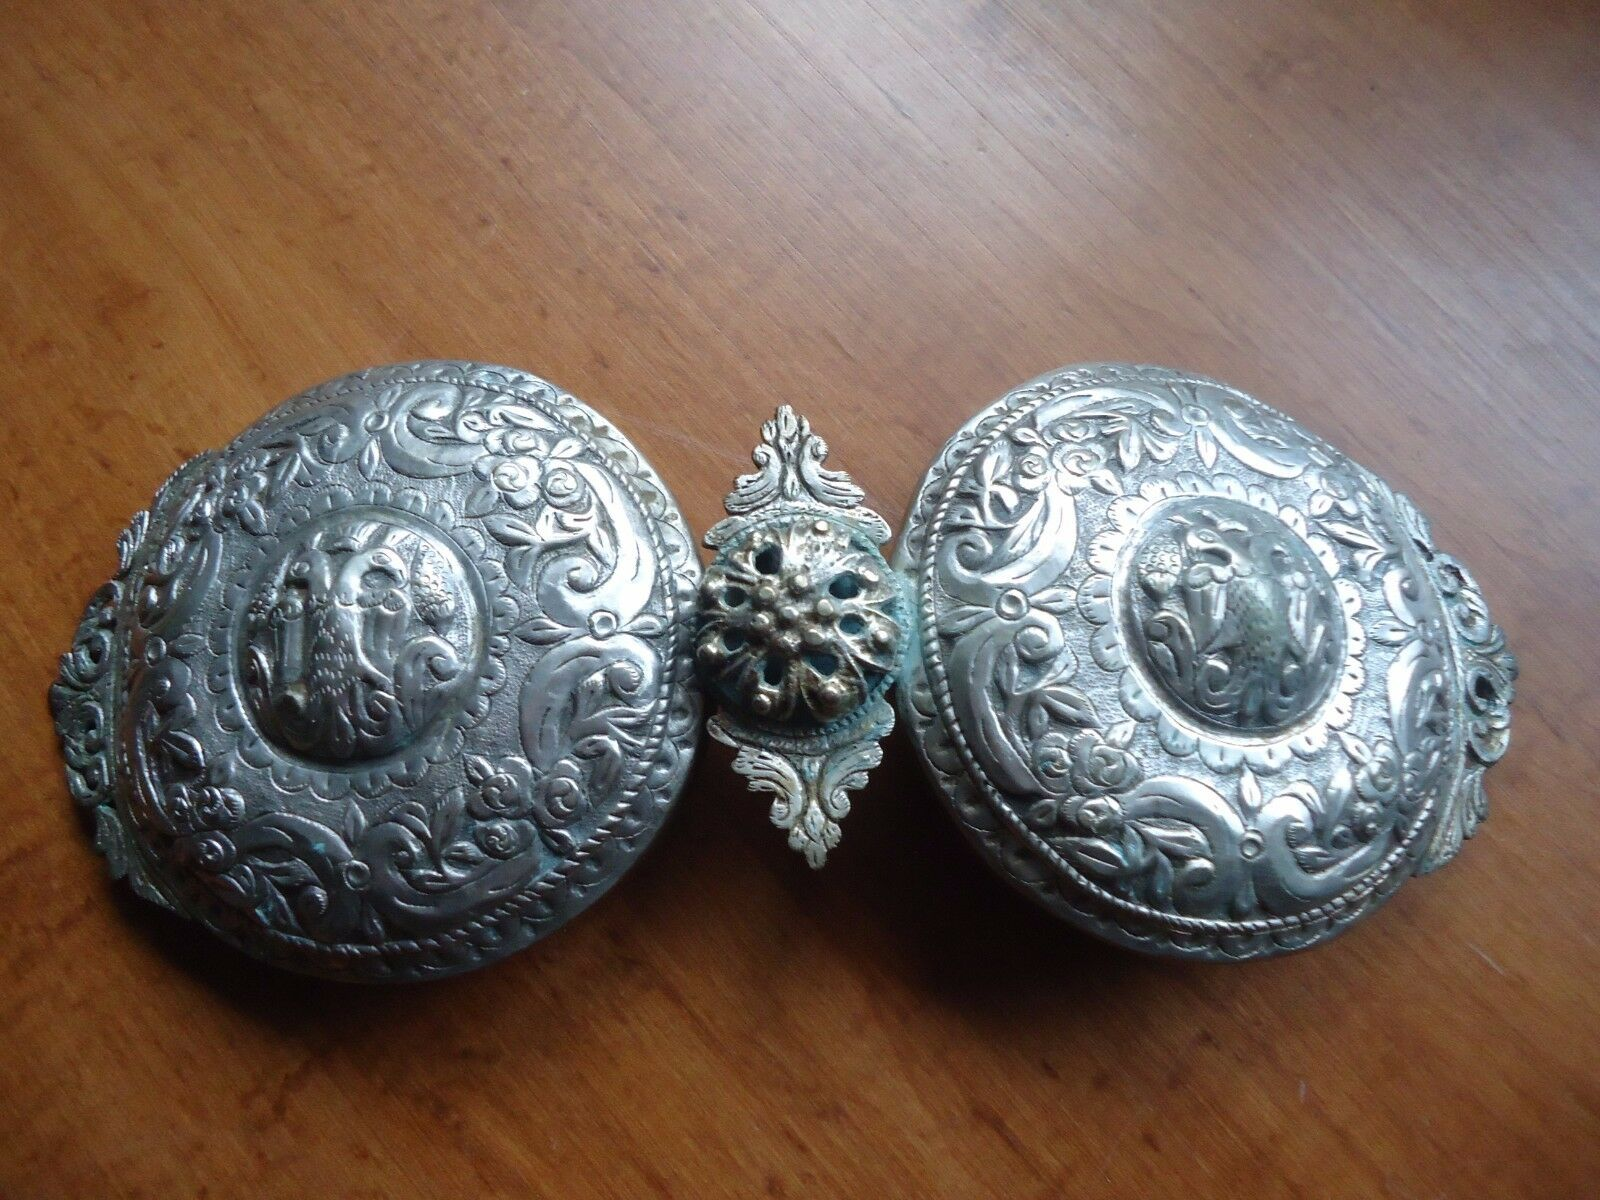 Antique ottoman jewelry silver alloy belt buckle